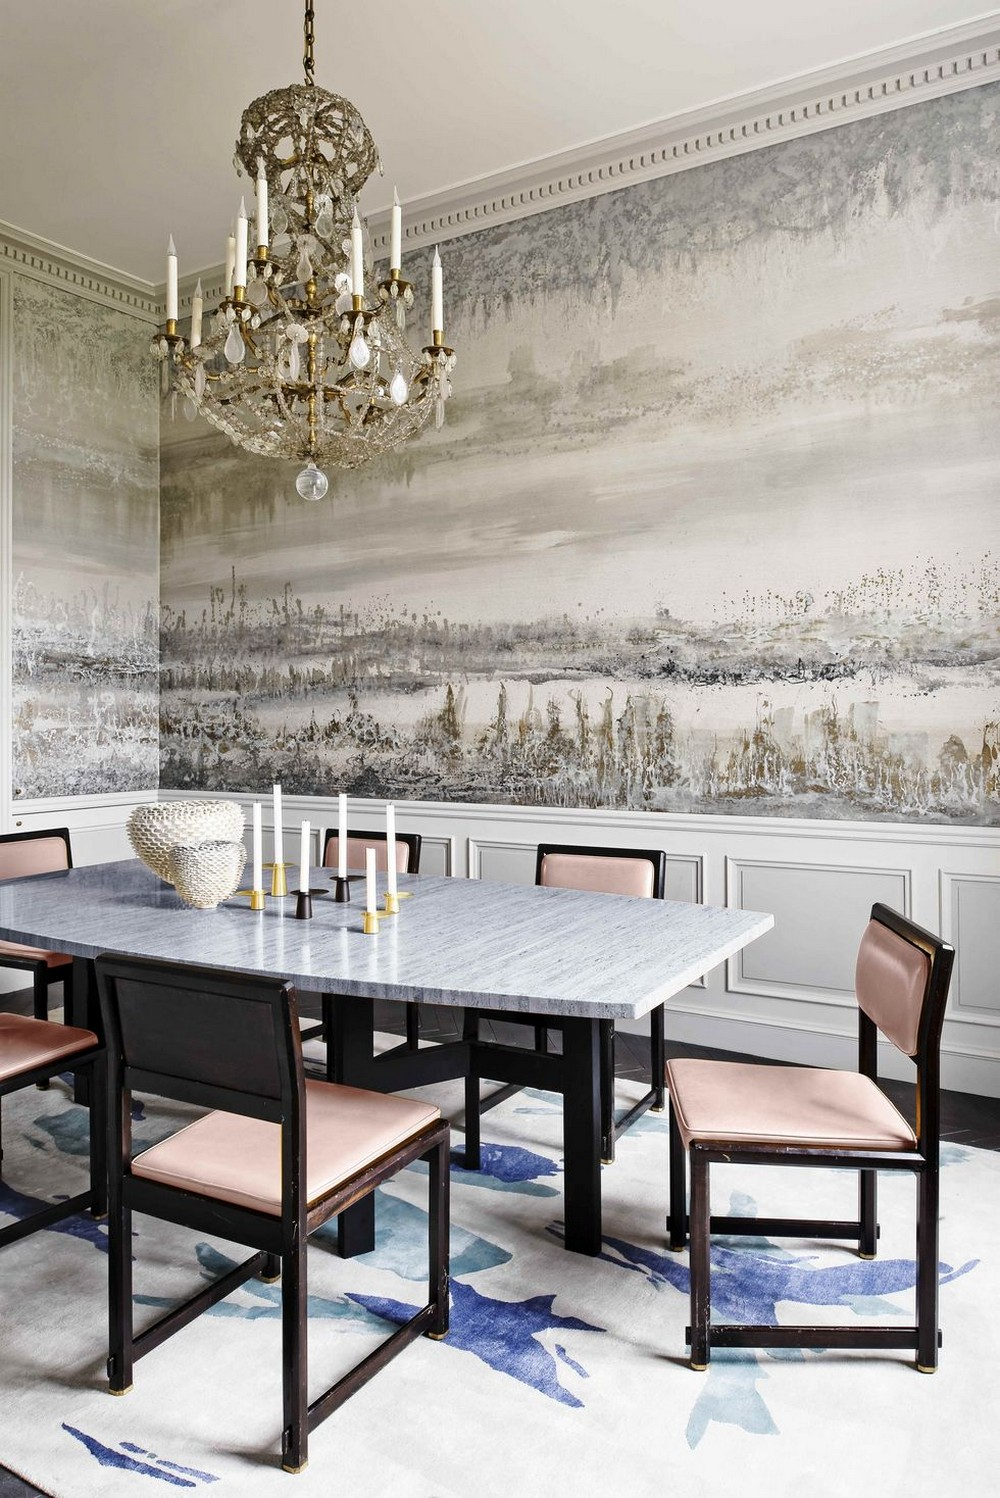 9 Designer Dining Room Ideas that Will Call for a Home Remodel 4 dining room ideas 9 Designer Dining Room Ideas that Will Call for a Home Renovation 9 Designer Dining Room Ideas that Will Call for a Home Remodel 4